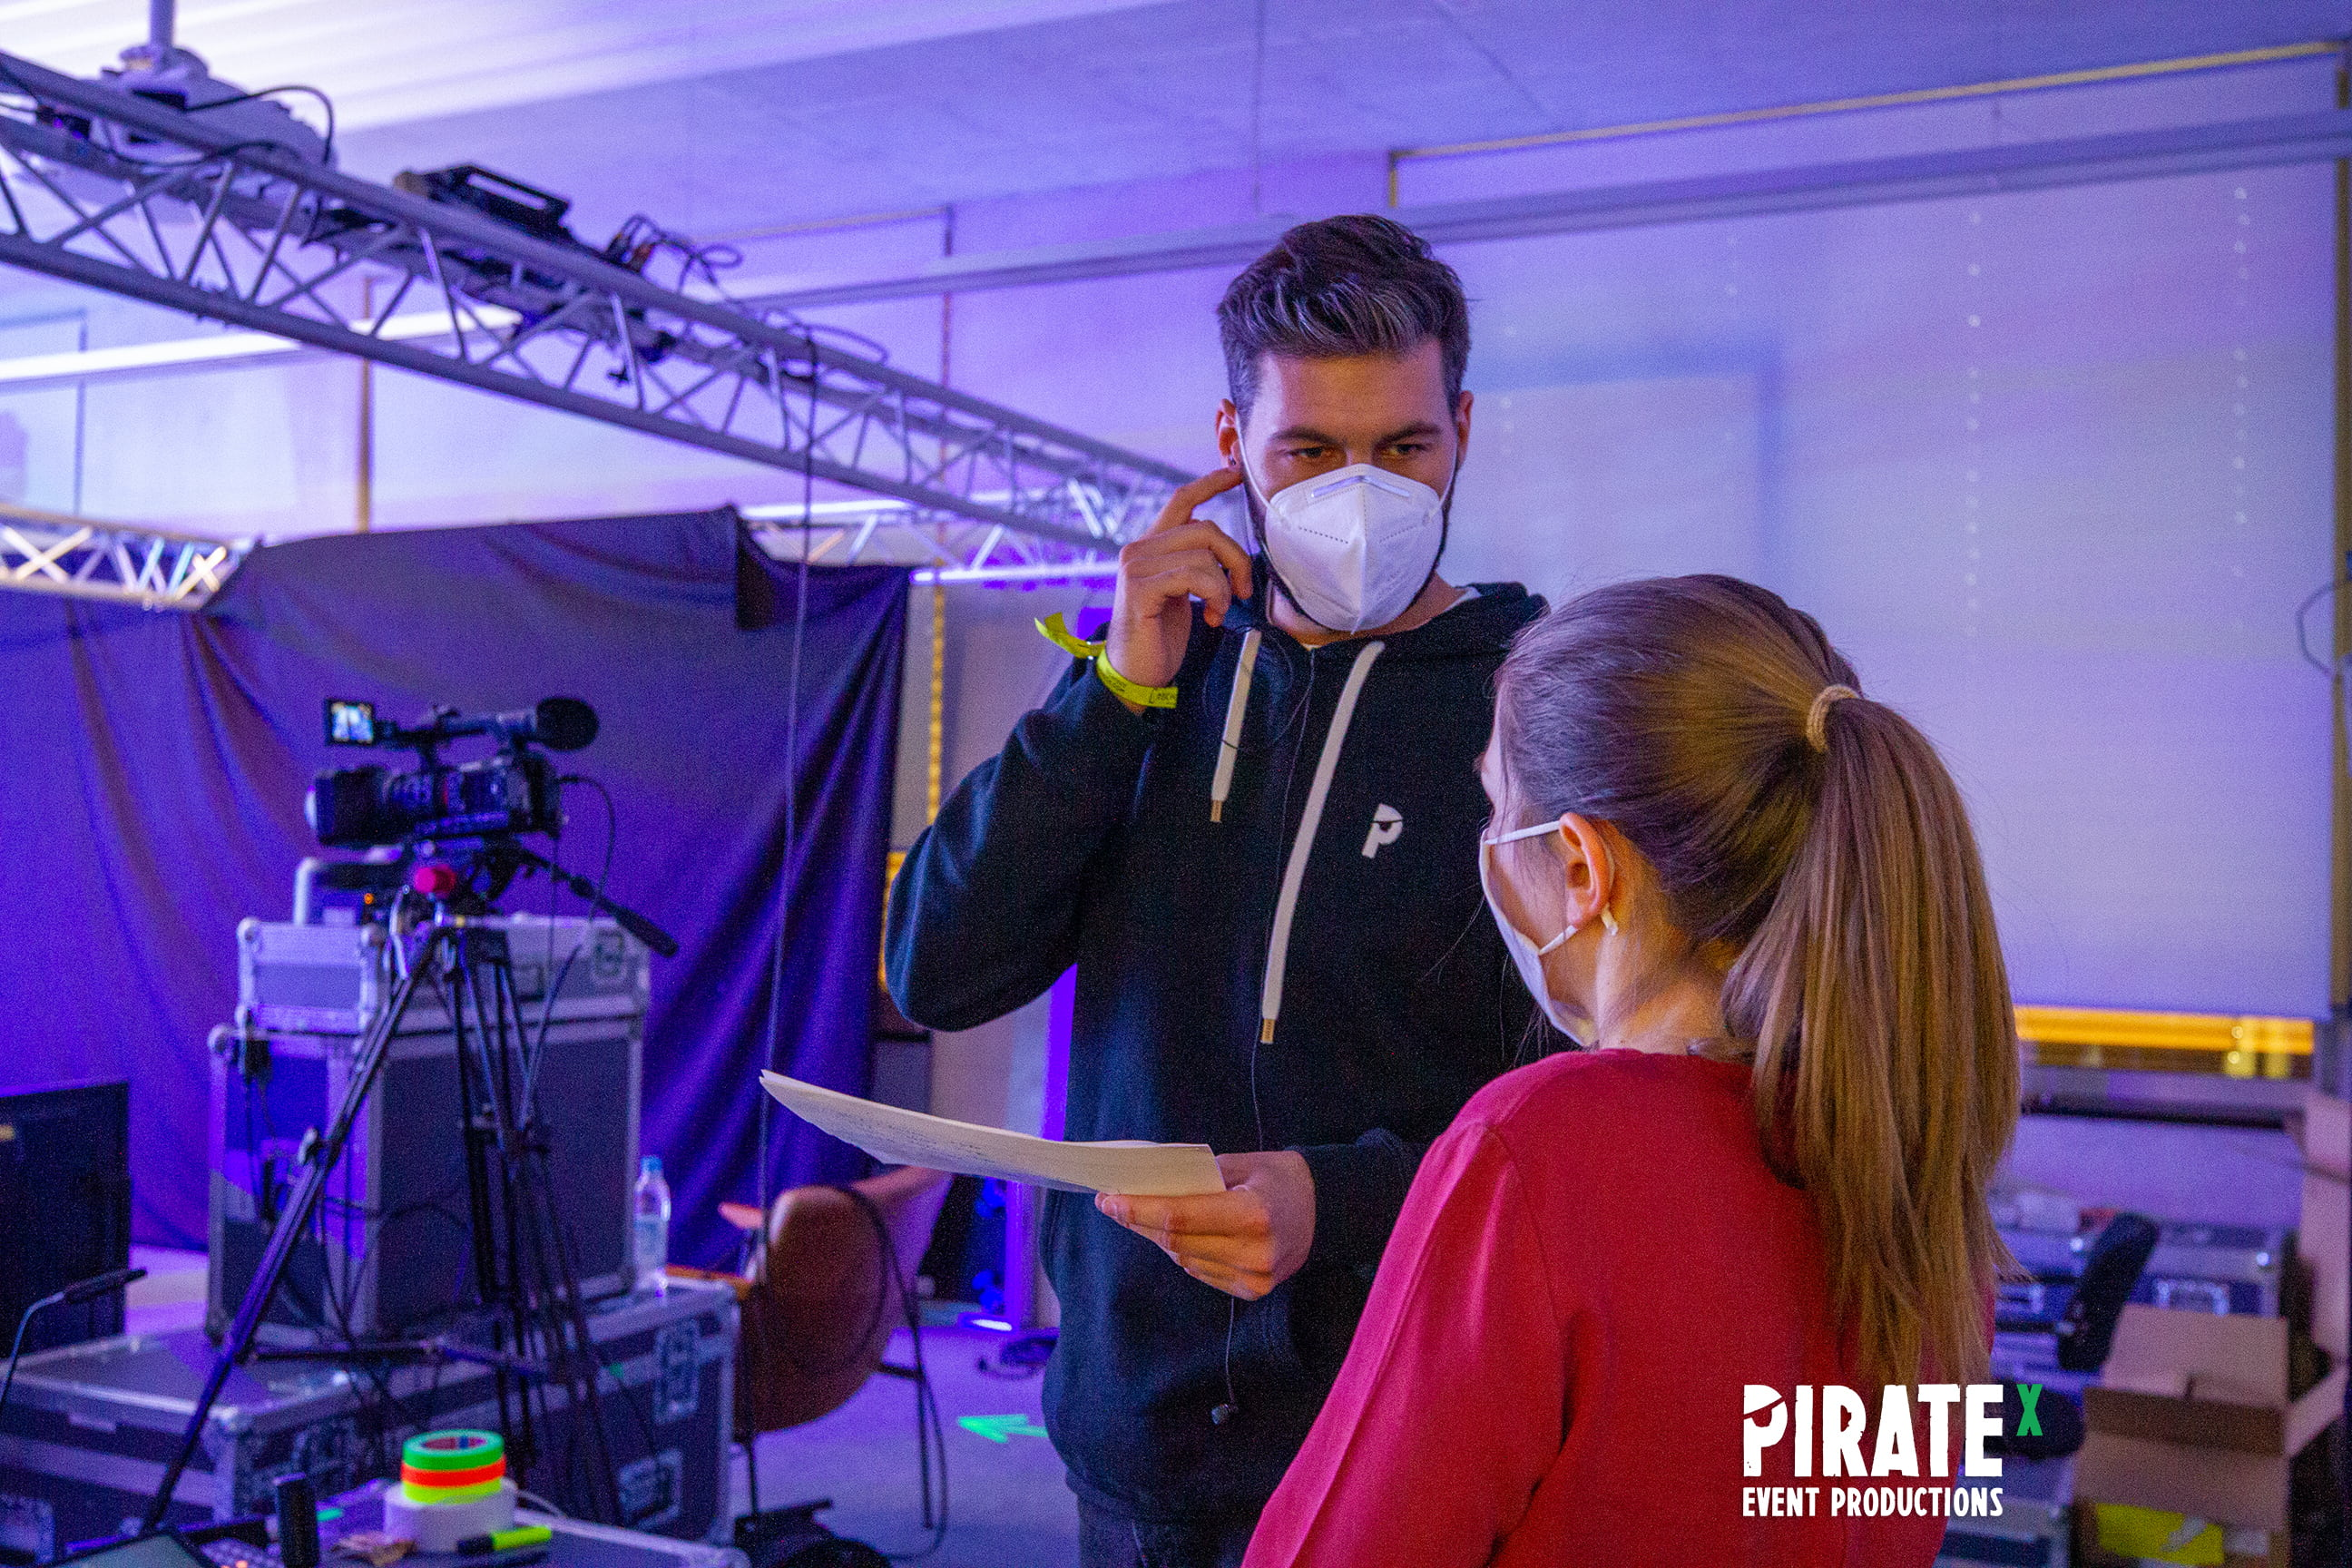 PIRATEx an online event agency for amazing virtual and hybrid events